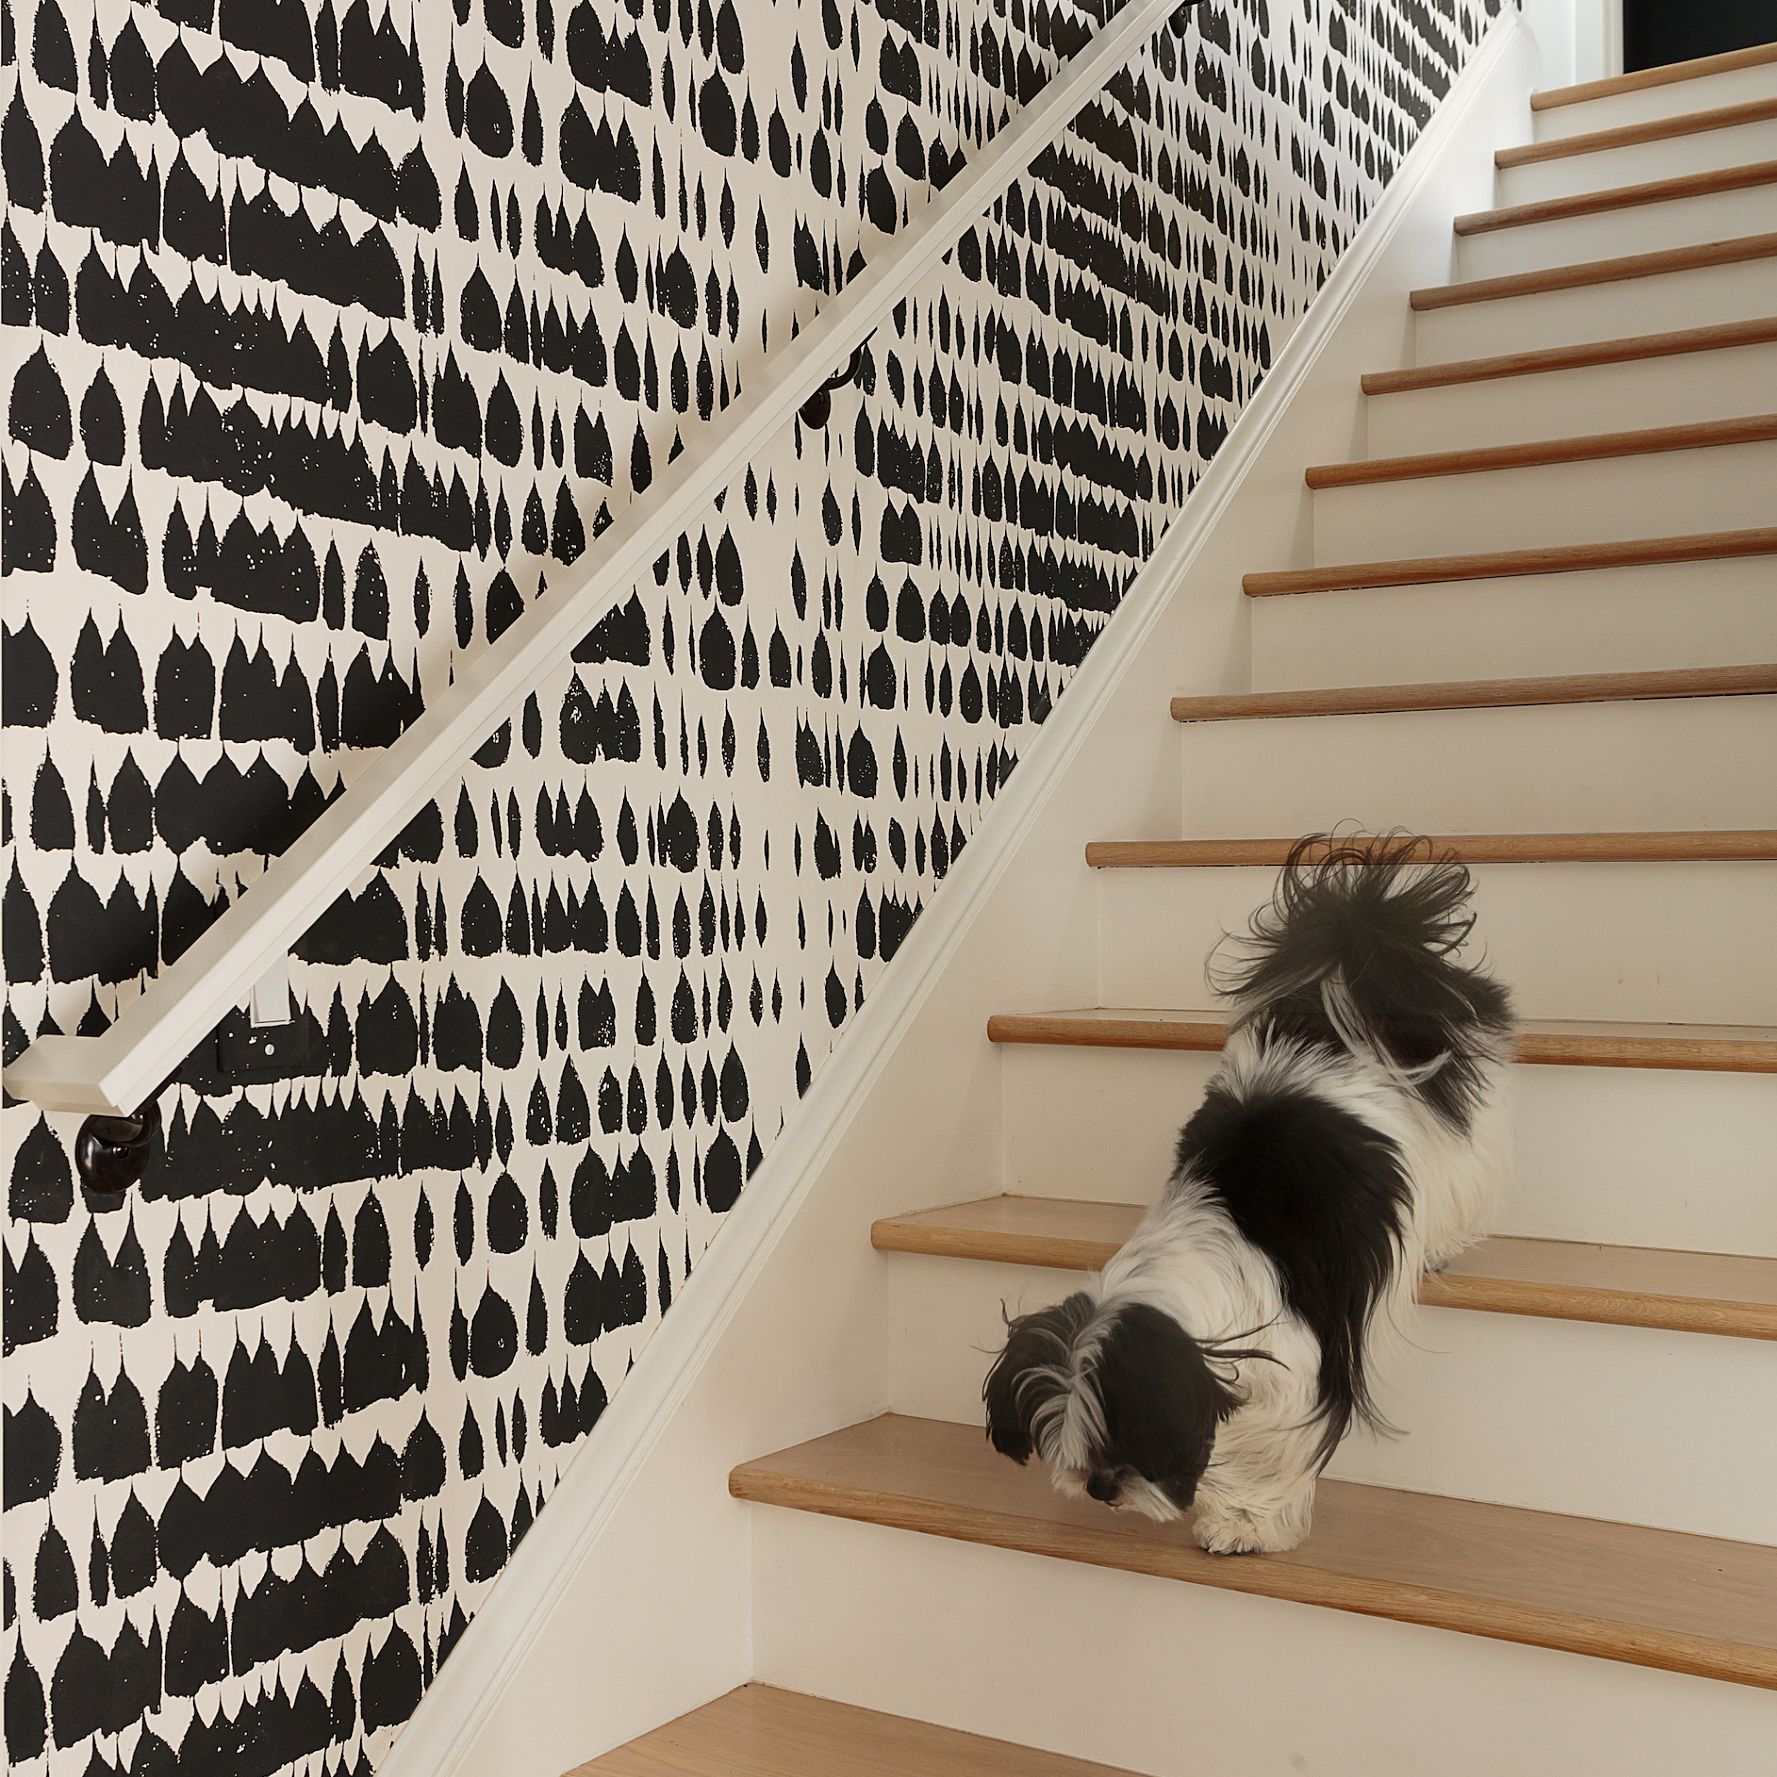 35 Hallway Decor Ideas To Try In Your Home: 8 Unexpected Wallpaper Ideas To Try In Your Home